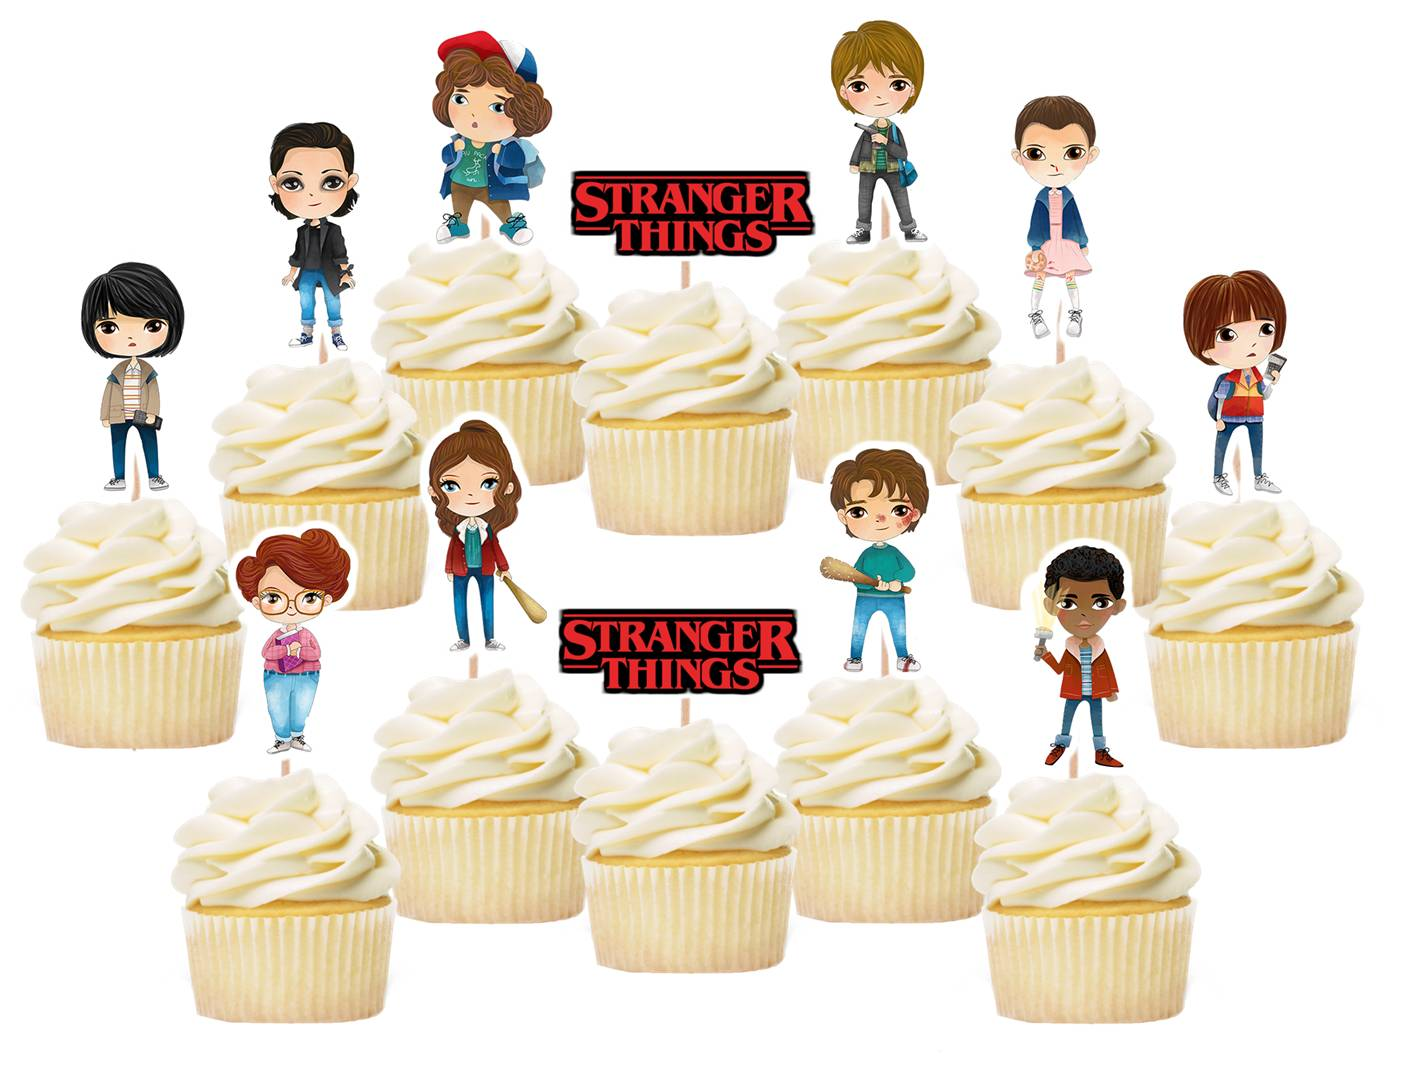 stranger things cupcake toppers, cake decorations